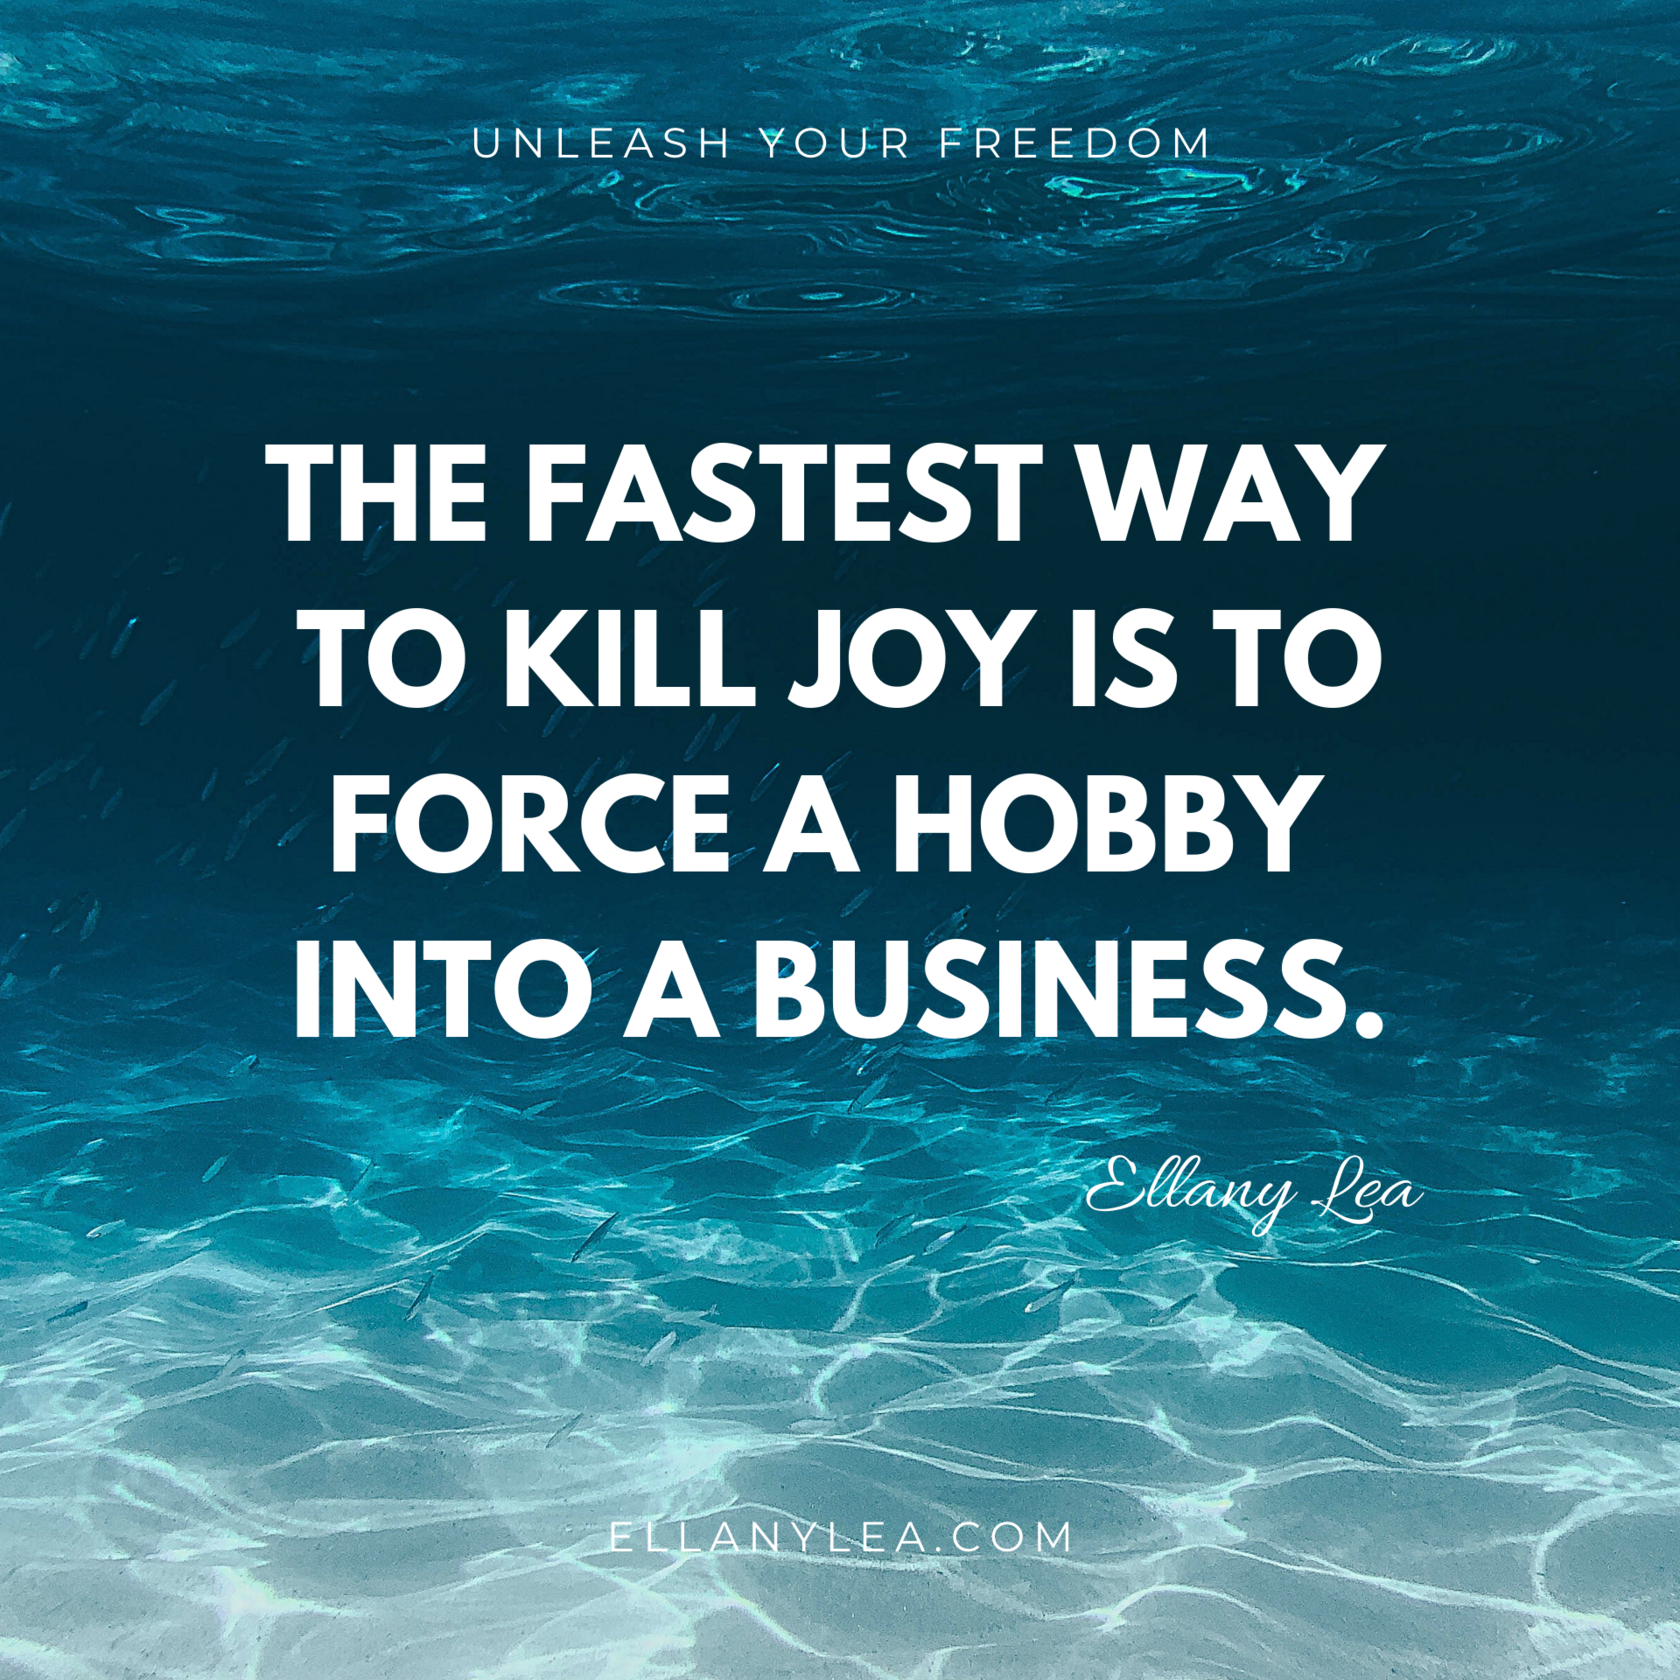 quote - the fastest way to kill